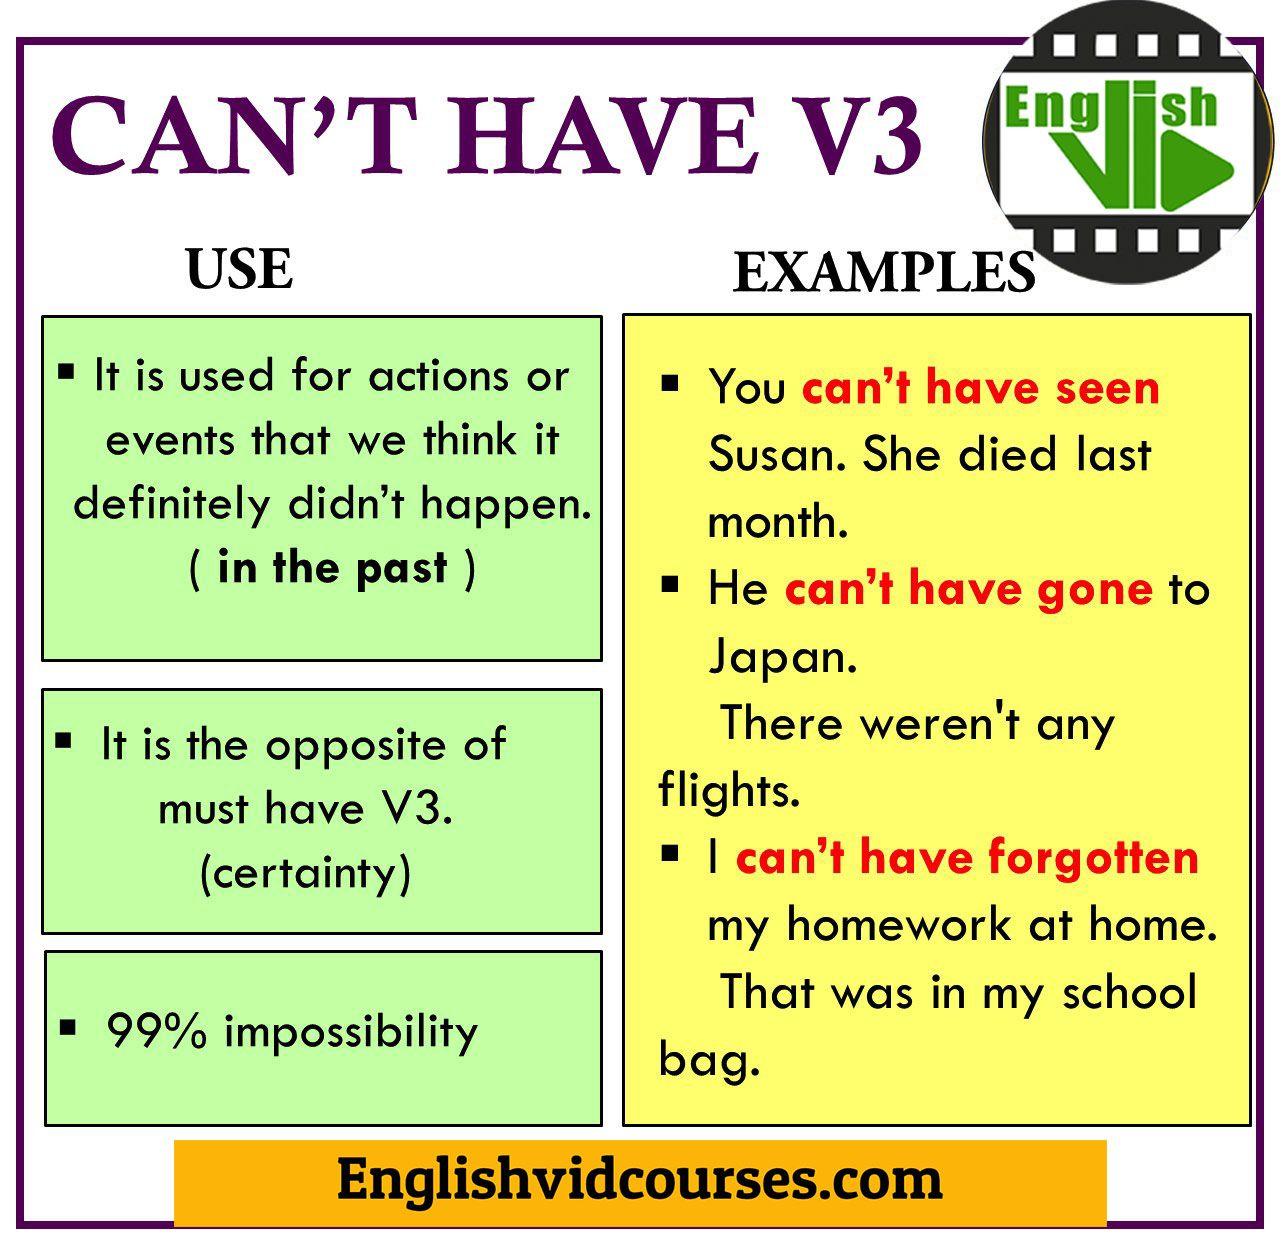 Can T Have Past Participle English Language Learning English Verbs Learn English [ 1247 x 1280 Pixel ]